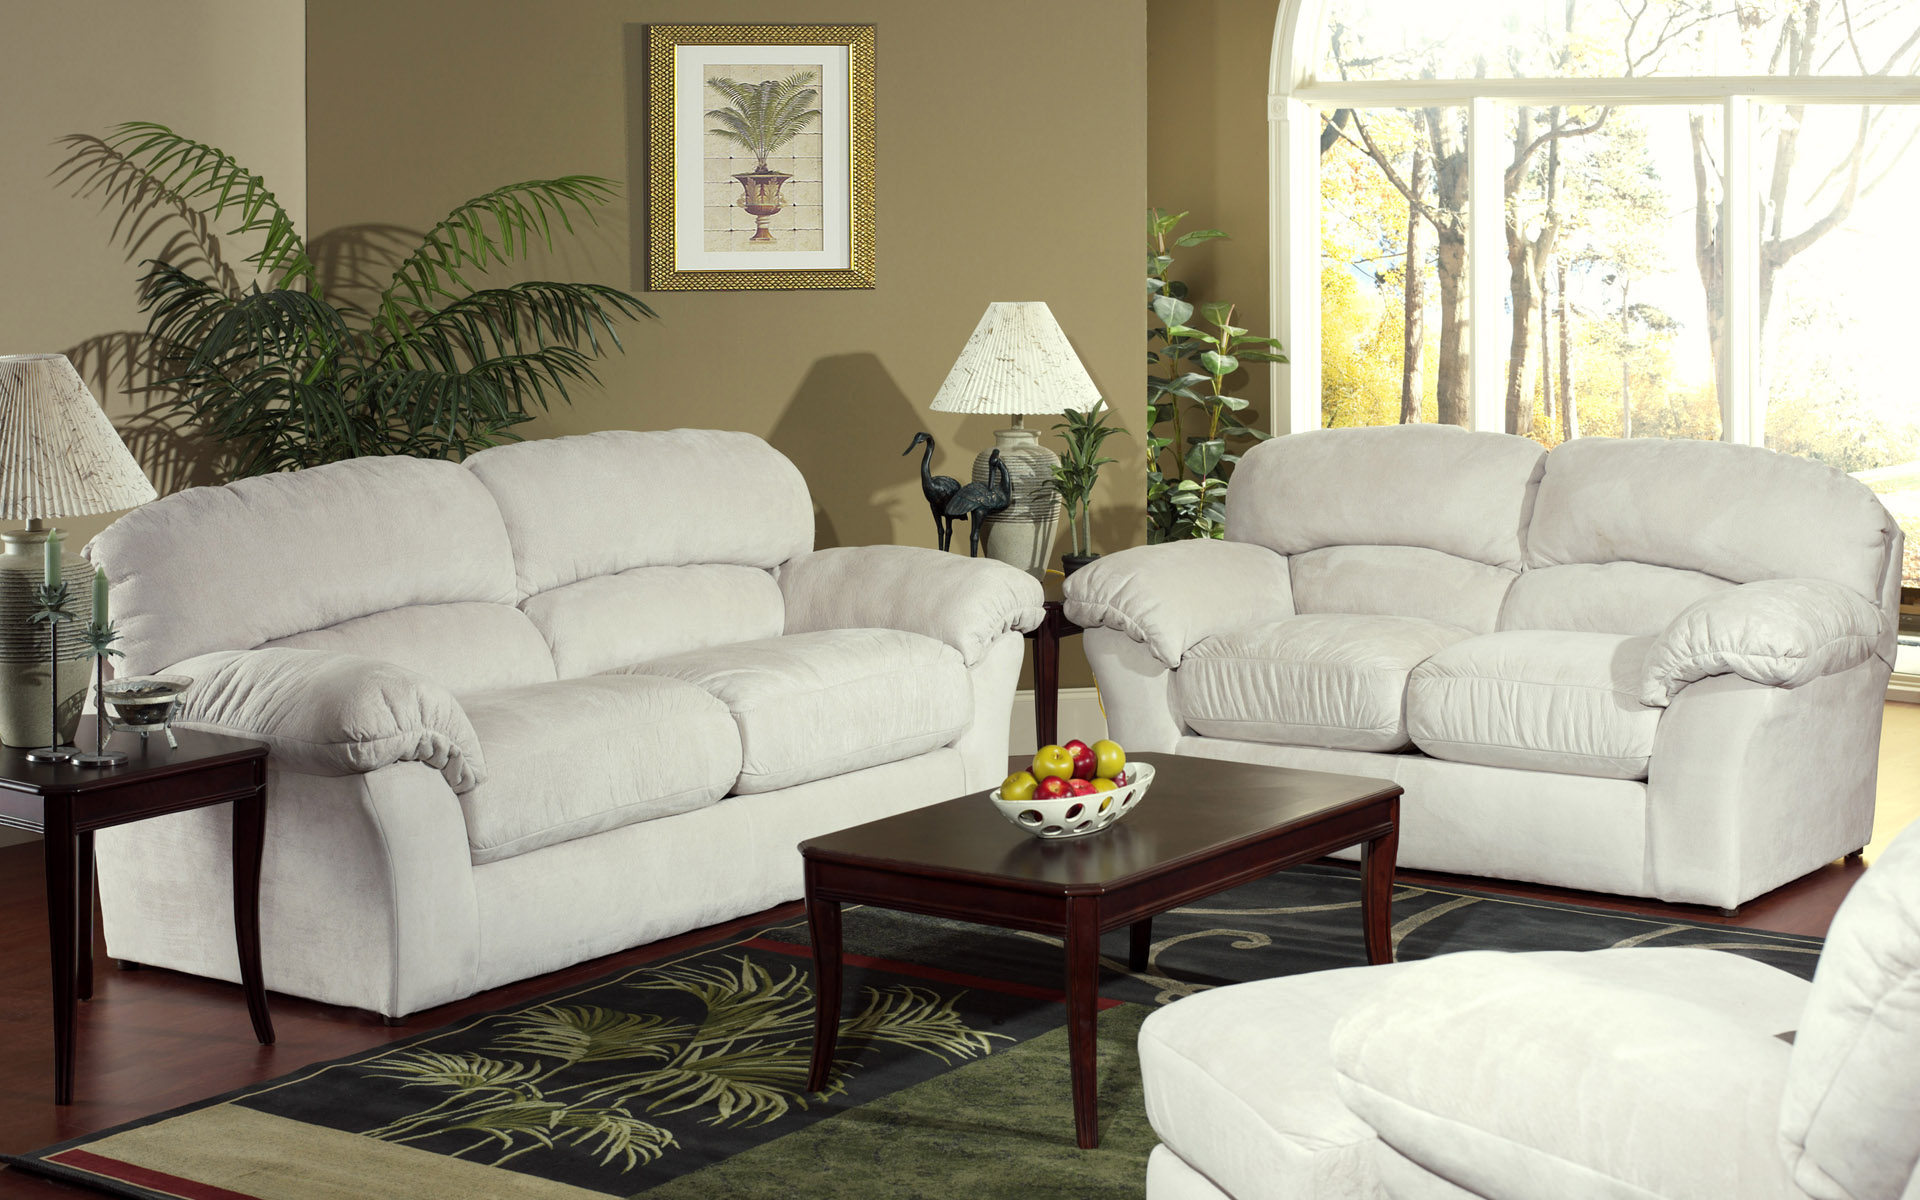 15 Awesome White Living Room Furniture For Your Living Space